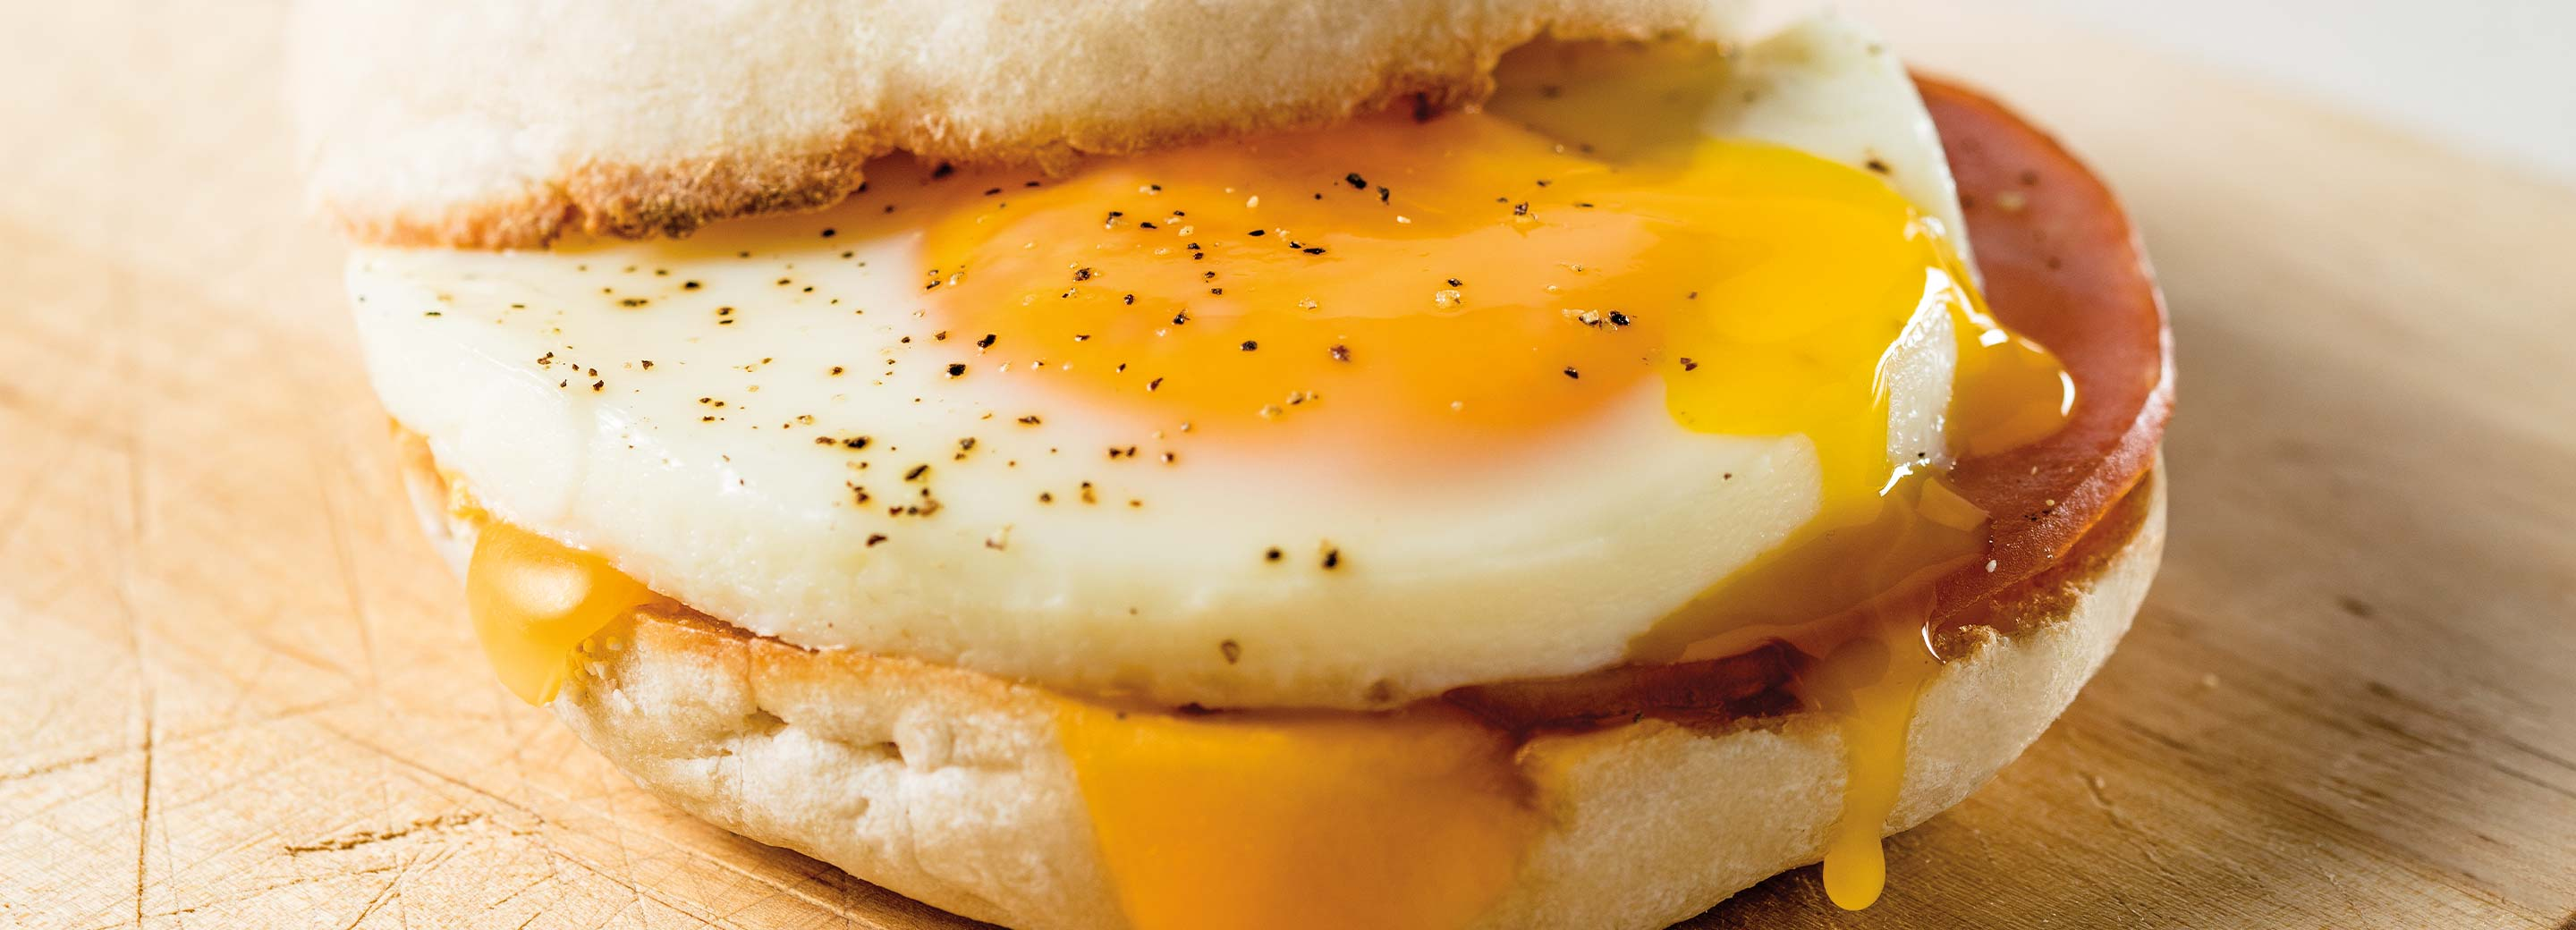 Grab & Go Breakfast Sandwich